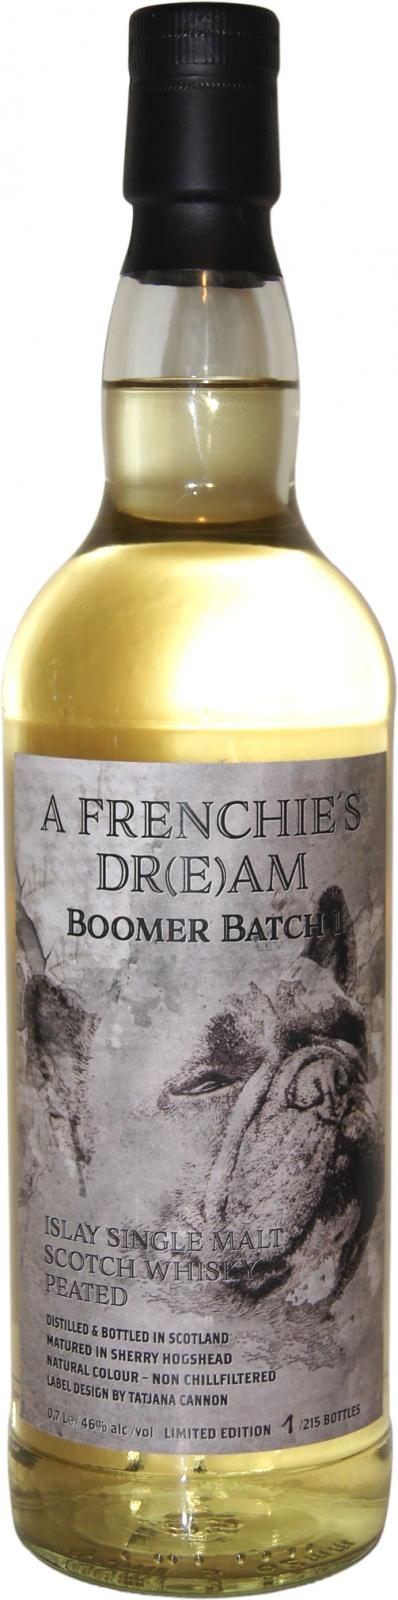 A Frenchie's Dr(e)am Boomer Batch 1